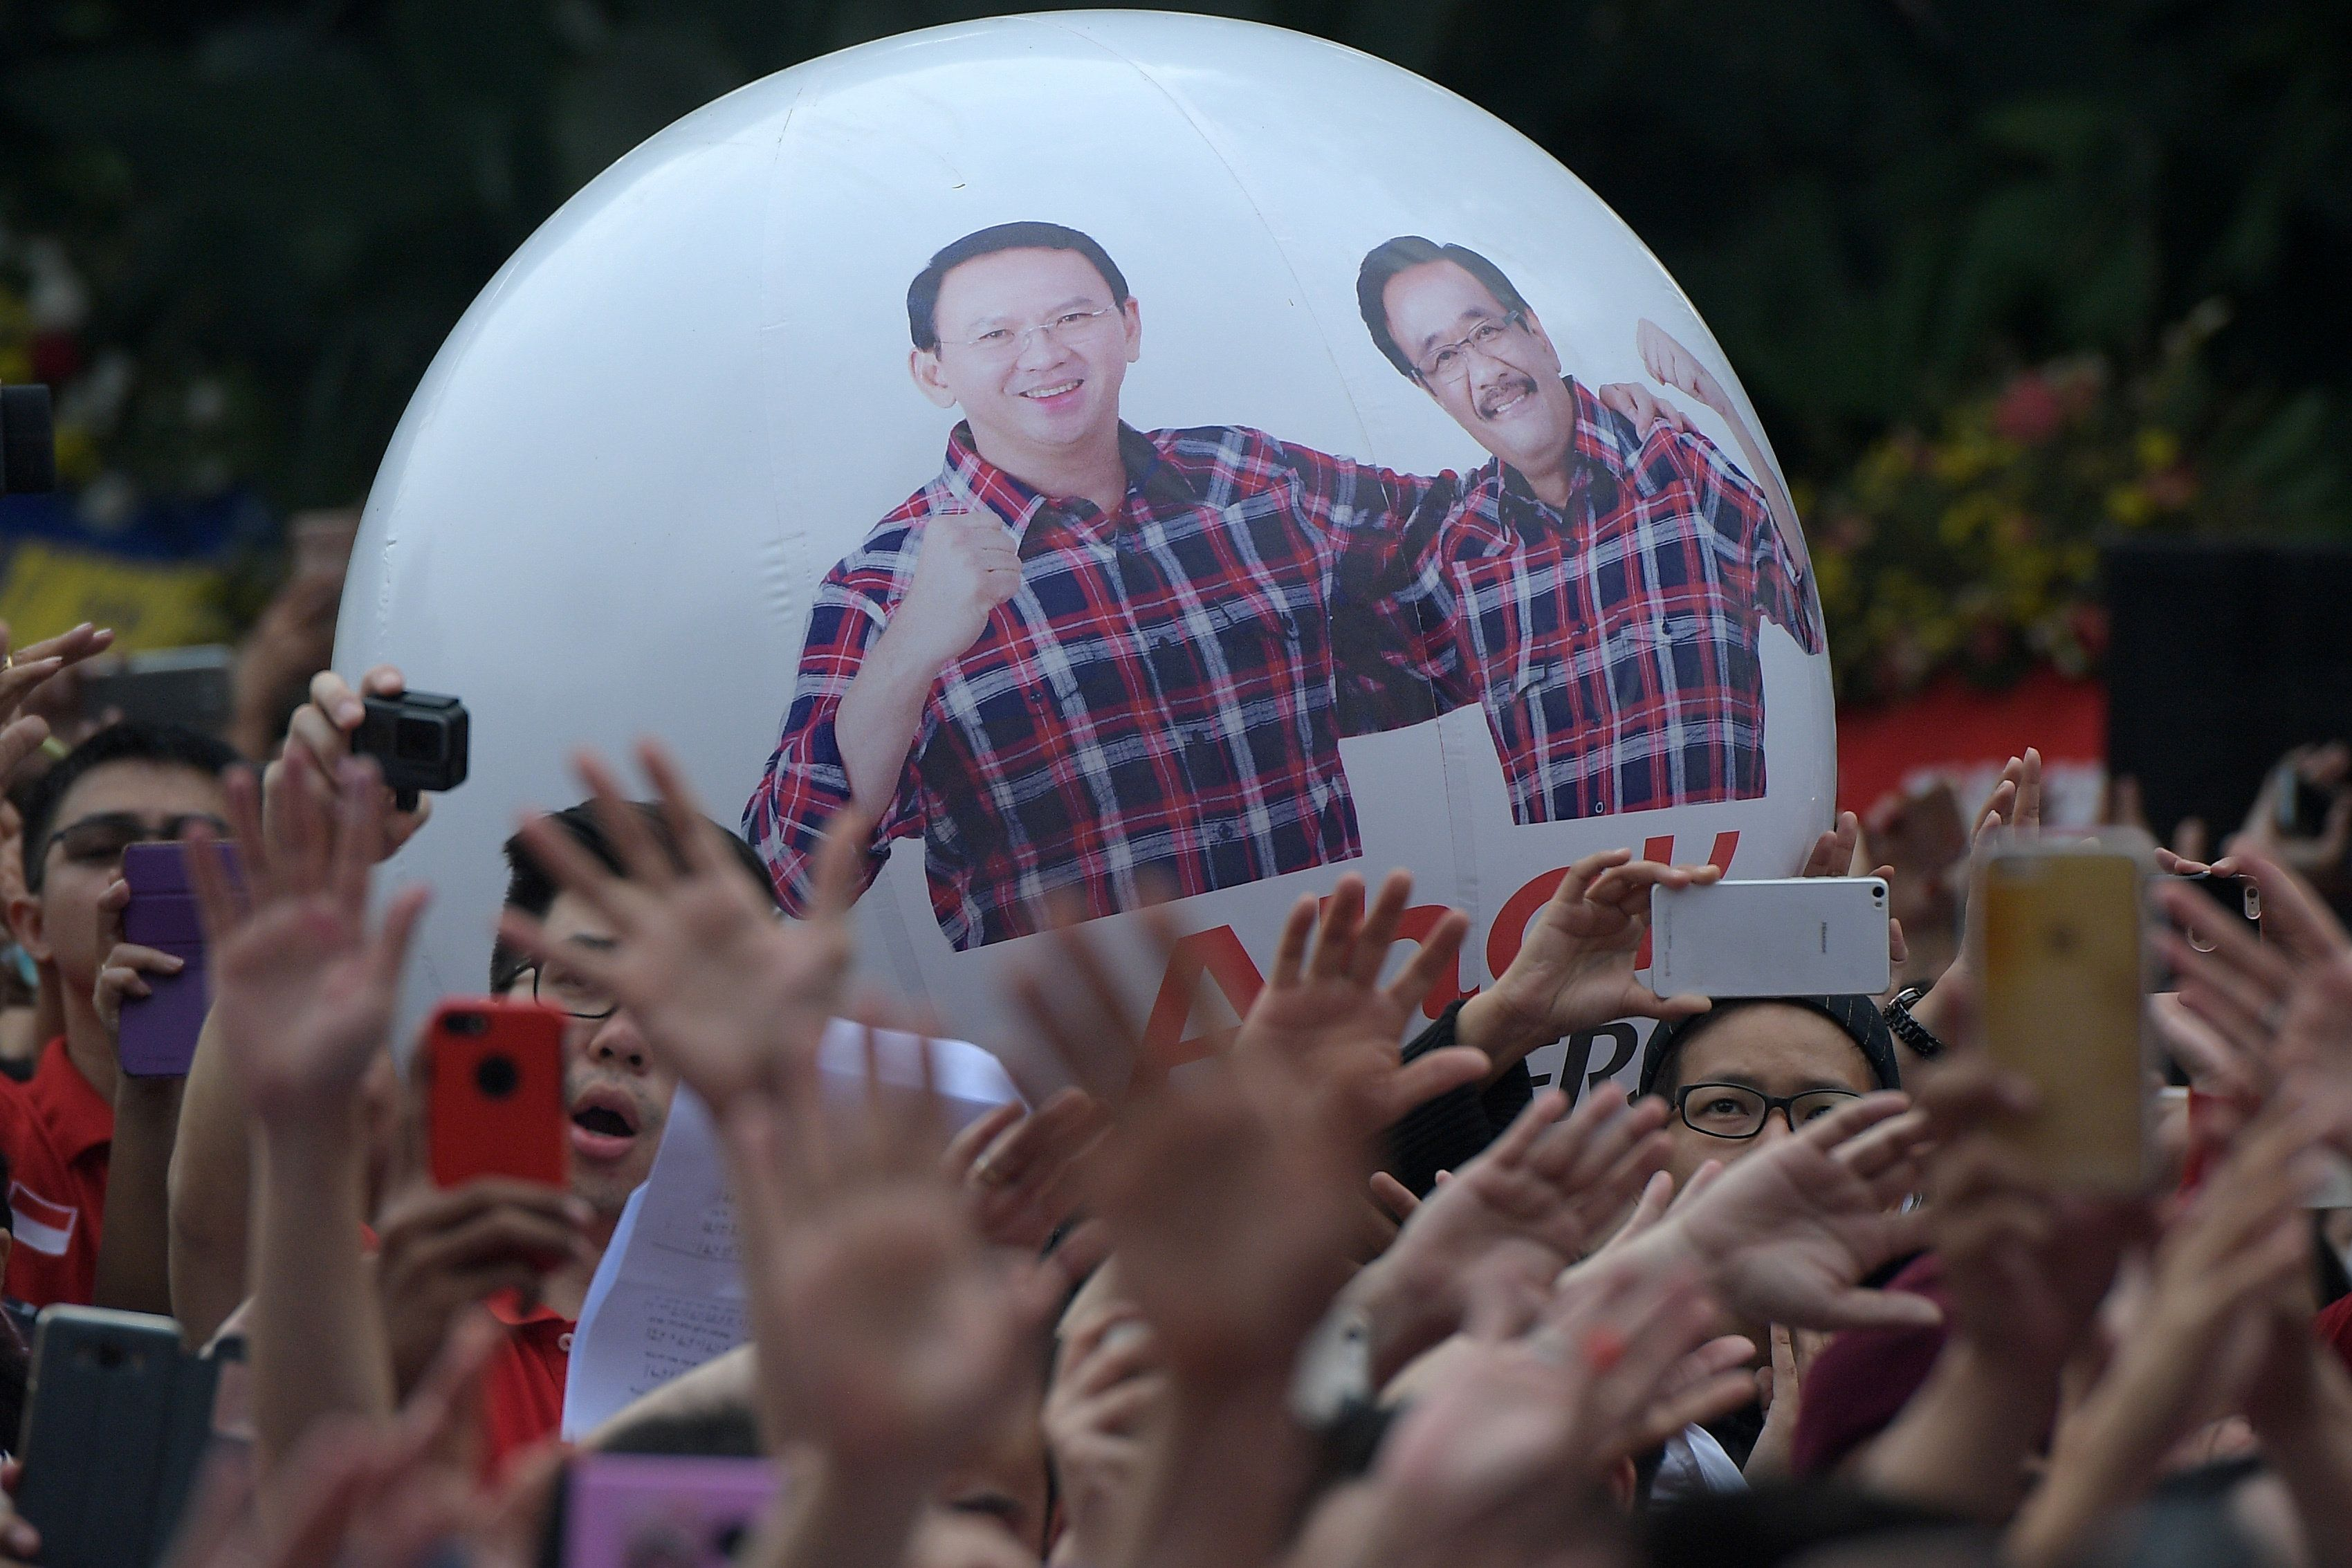 Supporters of former Jakarta governor Basuki Tjahaja Purnama, popularly known as Ahok, gather at city hall a day after after a court sentenced him to two years in jail following blasphemy charges, in Jakarta, Indonesia May 10, 2017 in this photo taken by Antara Foto. Pictured on the inflatable ball is Ahok and new acting Jakarta governor Djarot Saiful Hidayat. Antara Foto/Sigid Kurniawan/ via REUTERS   ATTENTION EDITORS - THIS IMAGE HAS BEEN SUPPLIED BY A THIRD PARTY. FOR EDITORIAL USE ONLY. MANDATORY CREDIT. INDONESIA OUT. TPX IMAGES OF THE DAY